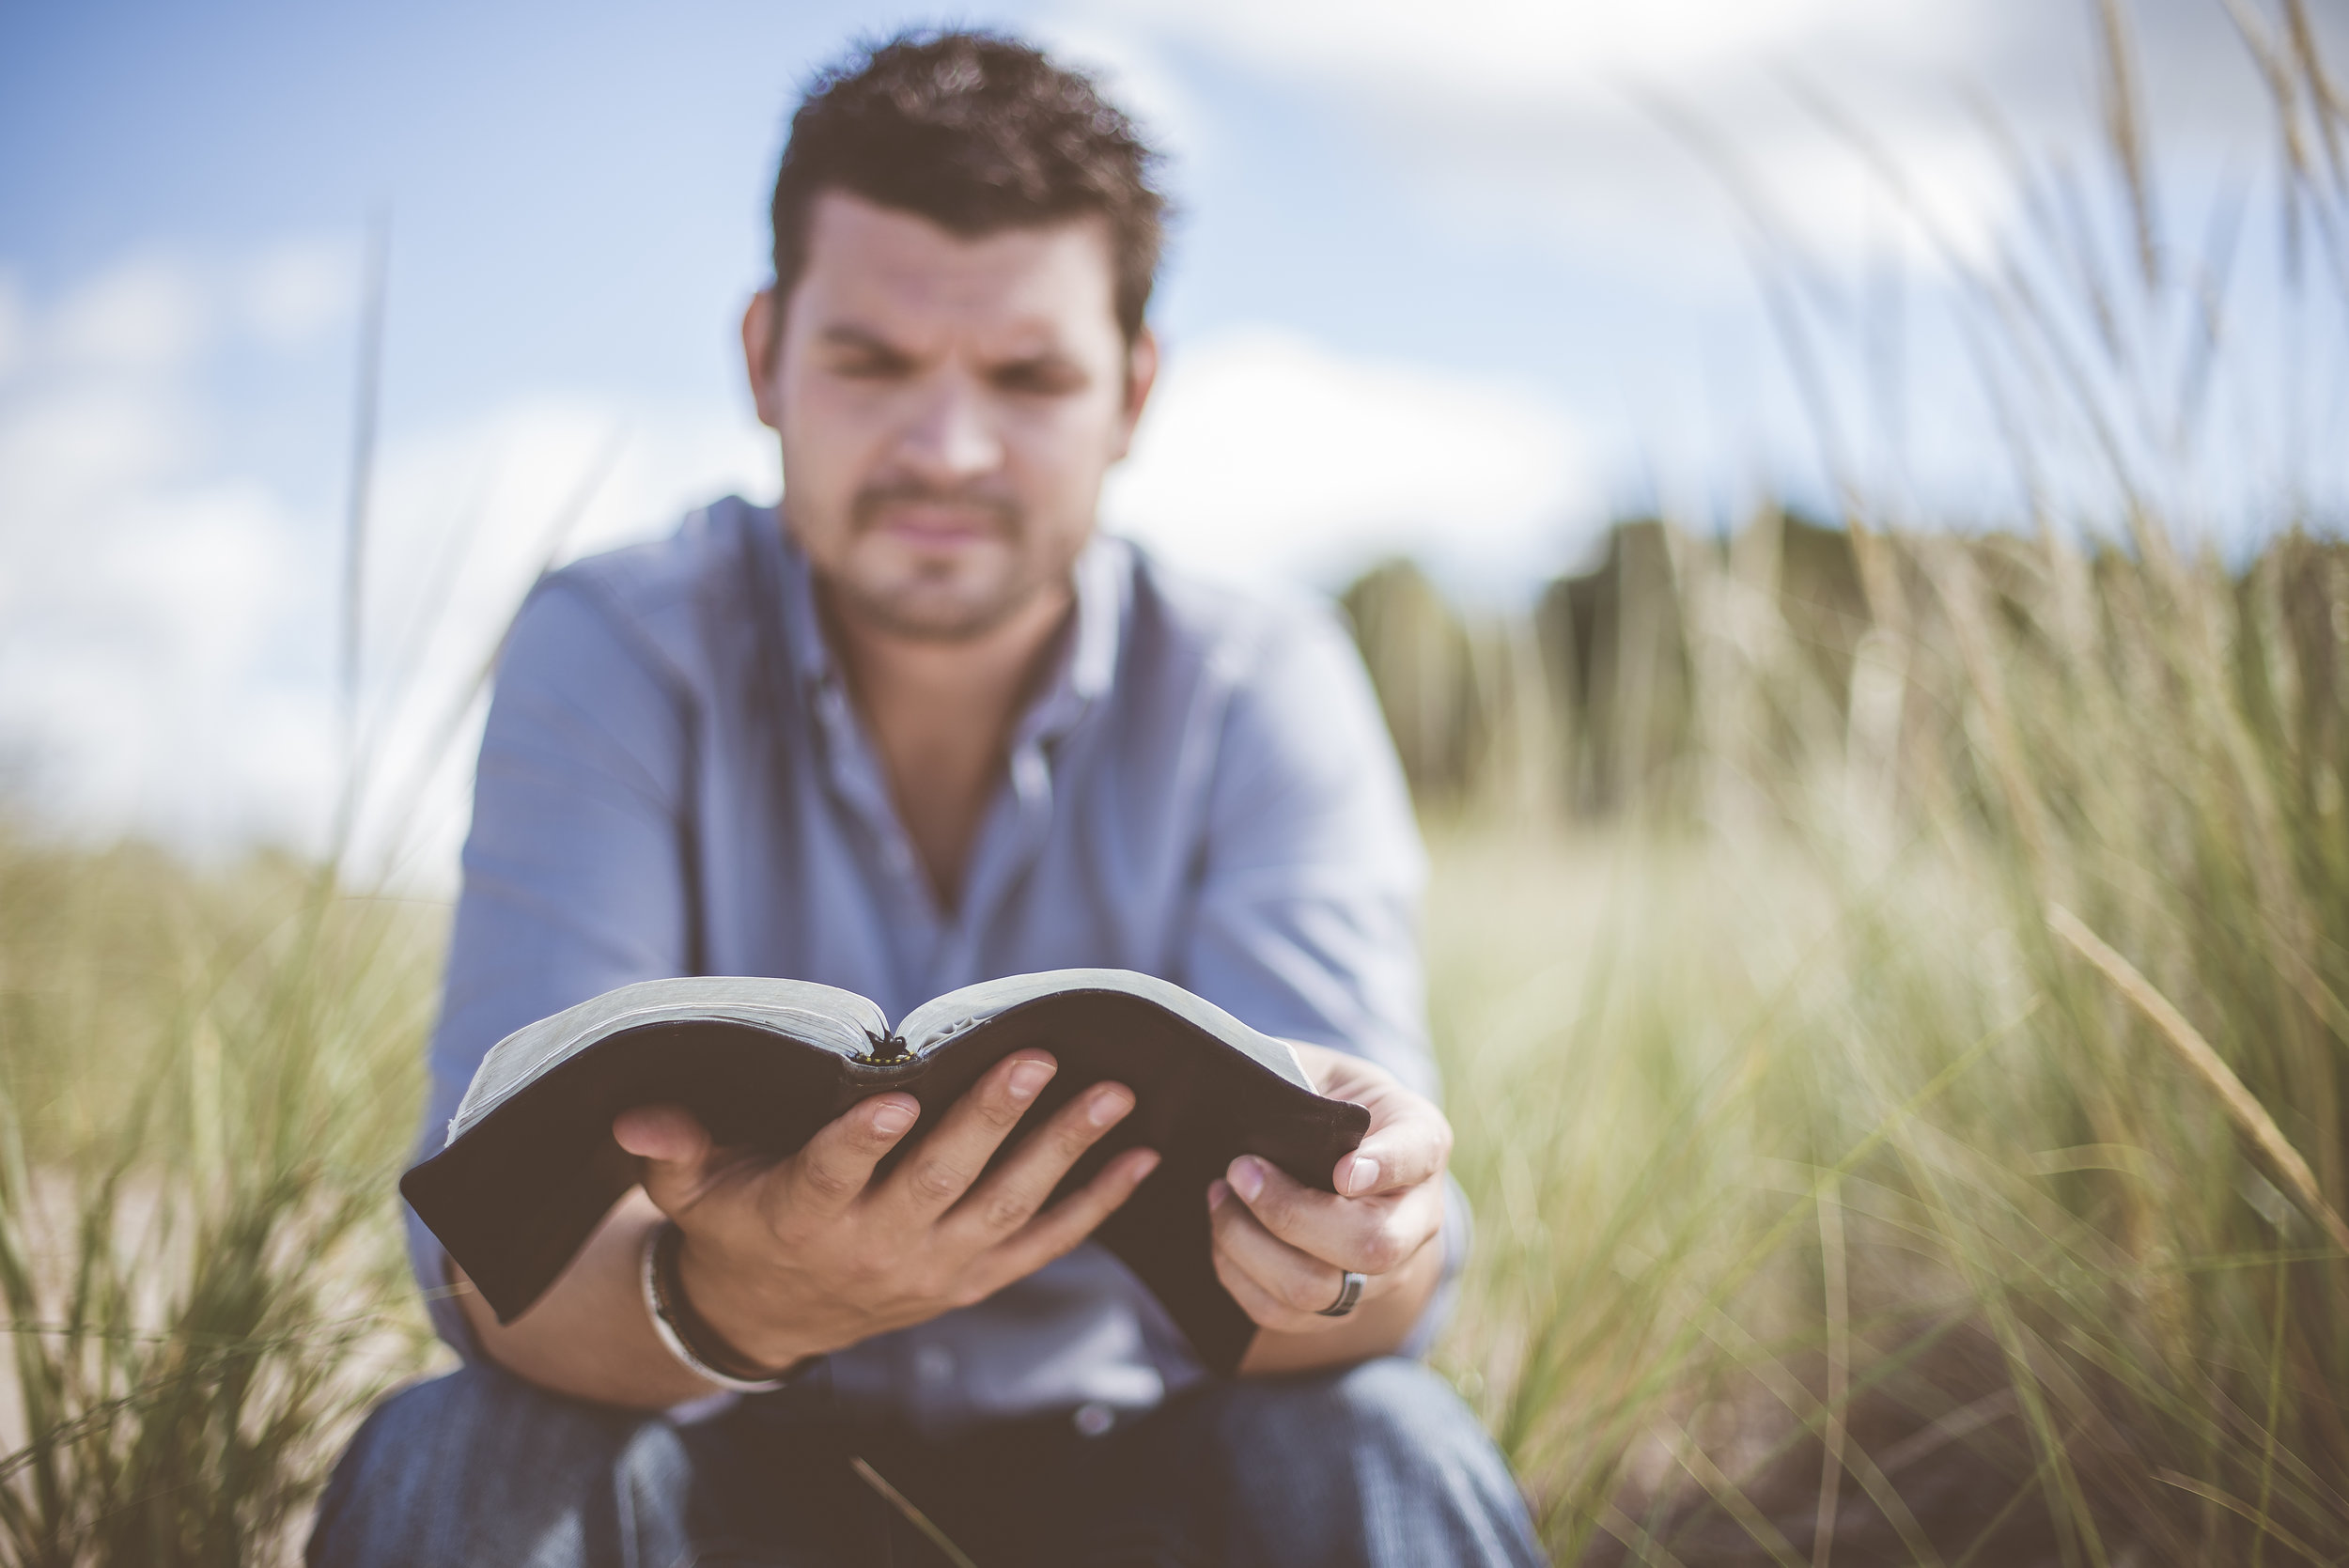 Seminary content without seminary stress - BTCL provides world-class biblical training quickly, affordably and with no exams! It's like a streamlined seminary for people that don't have the time, money or access to seminary.